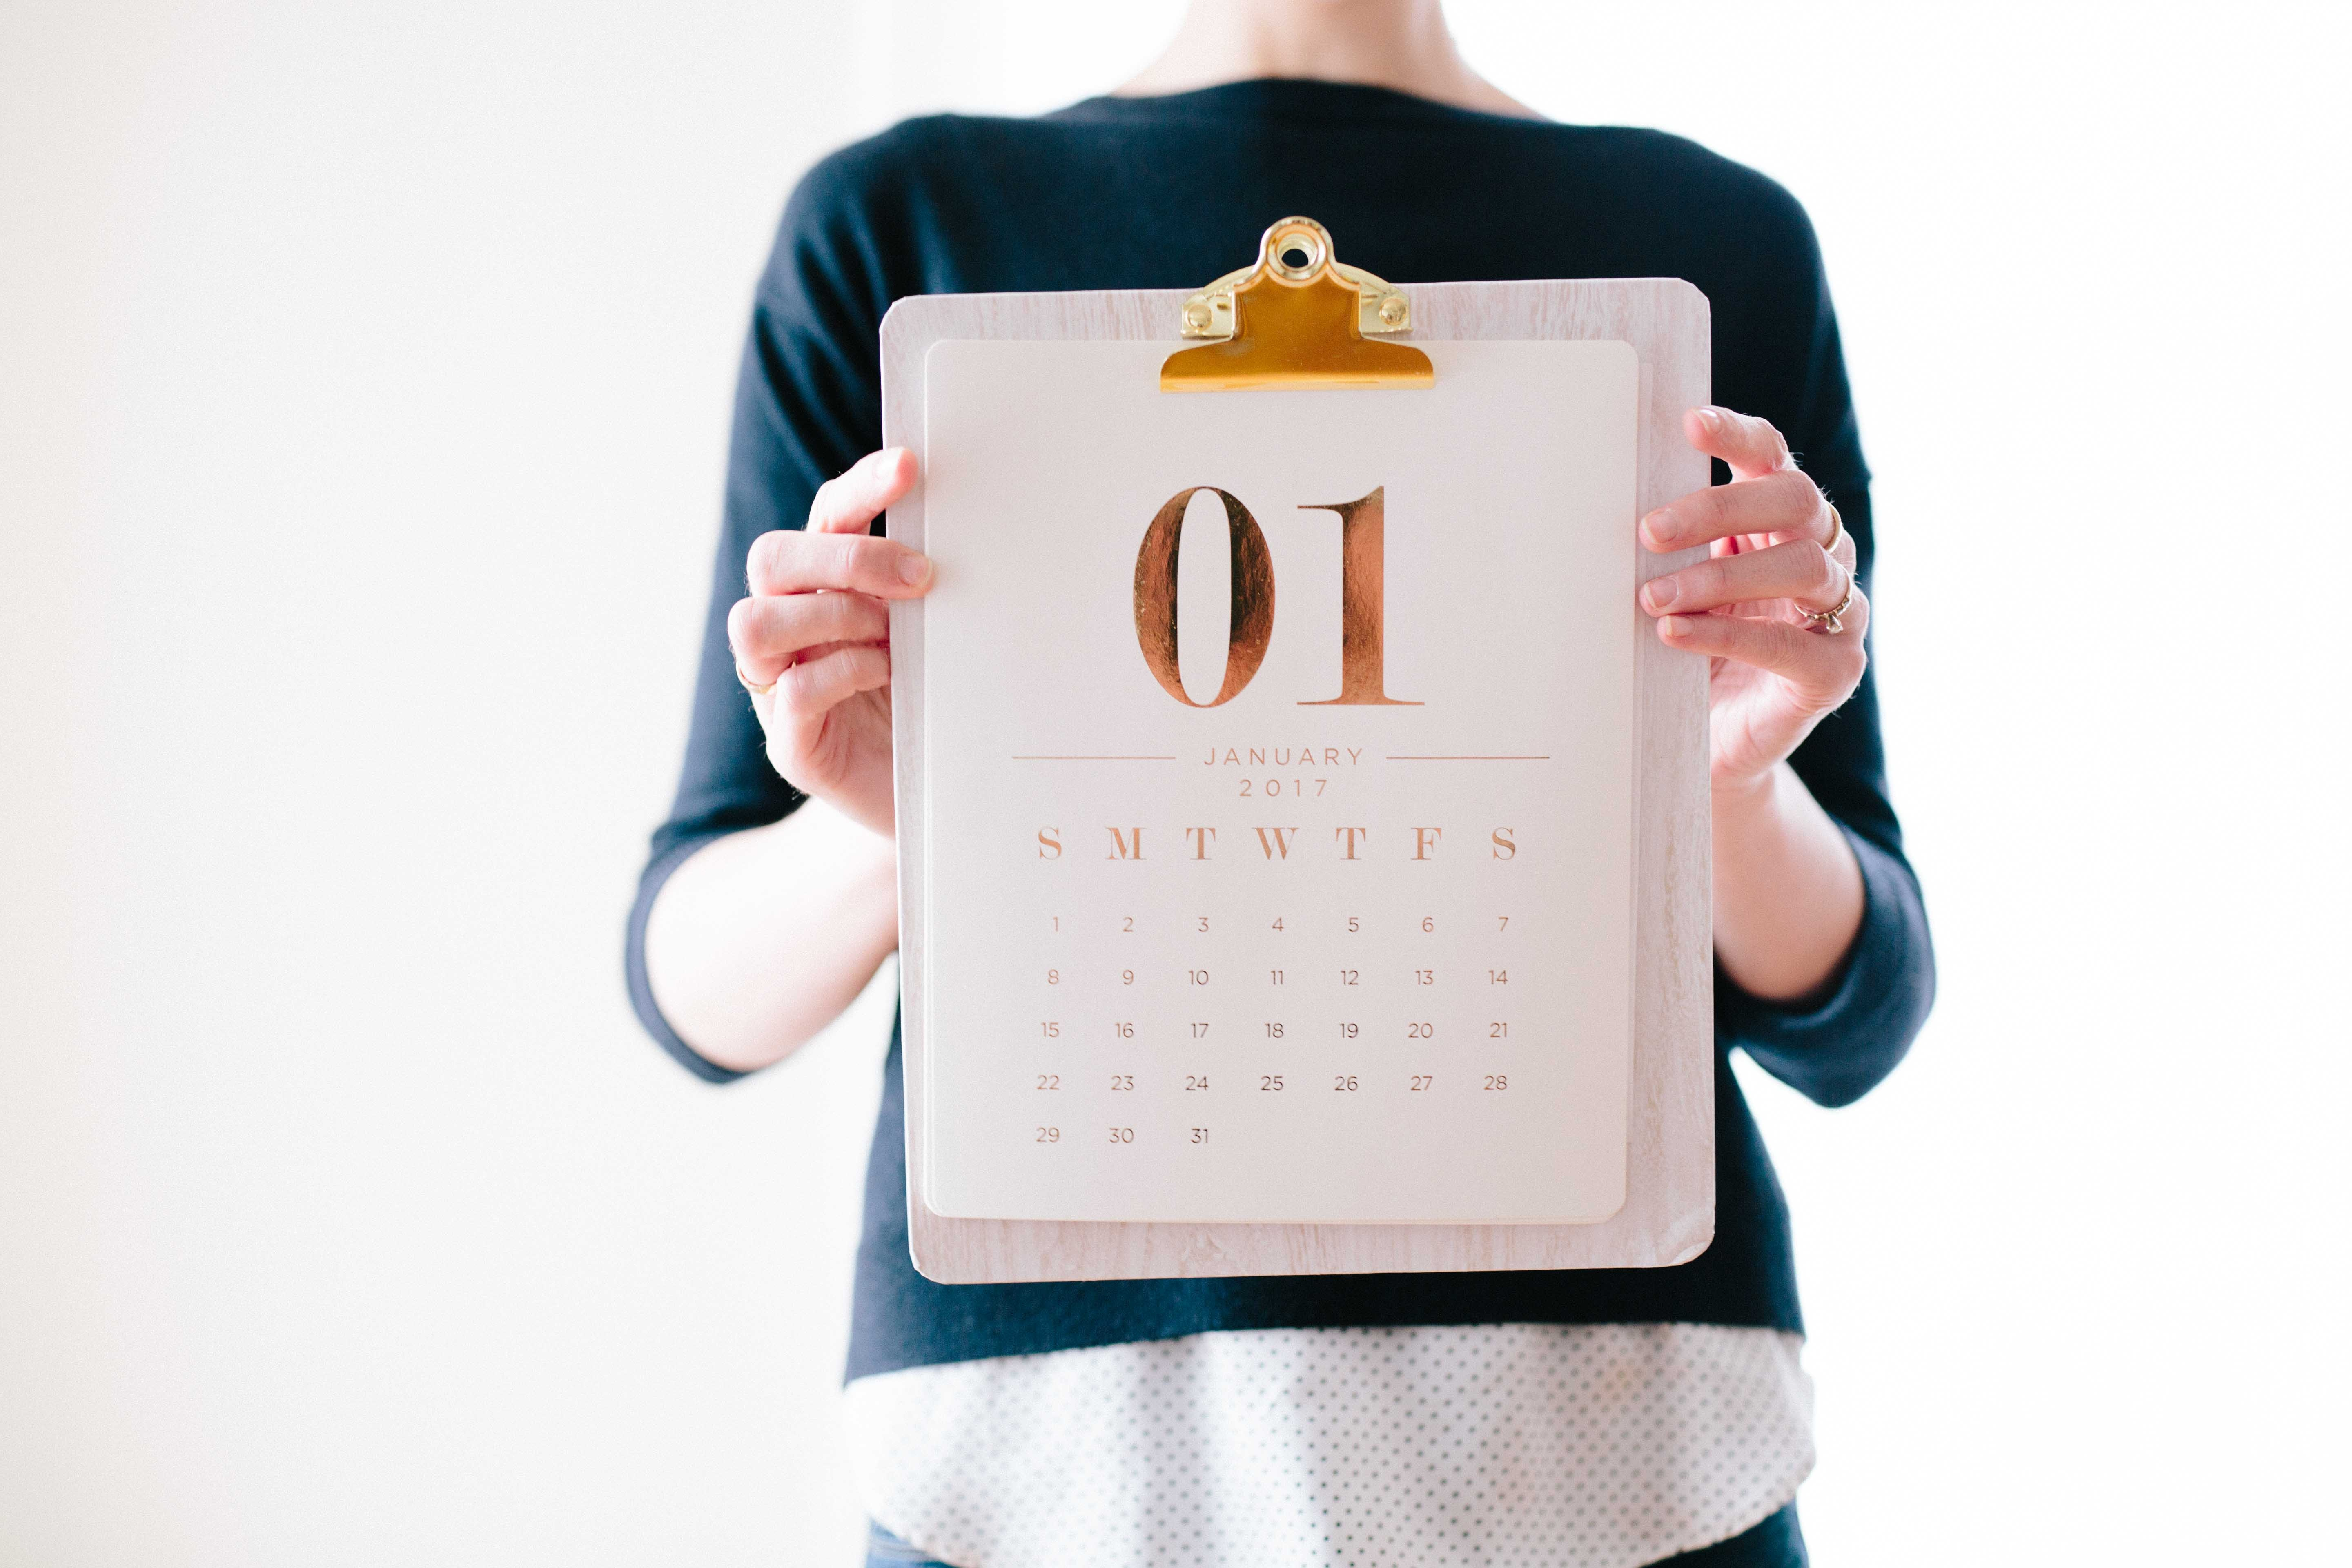 The Power Of A 90 Day Year. Setting 90 day #goals can #change your #life. And the best bit is it literally be done anywhere - in your planner, bullet journal! Whatever works for you. It makes tracking your goals so much easier! #goalsetting #motivation #bossbabe #girlboss #momboss #planning